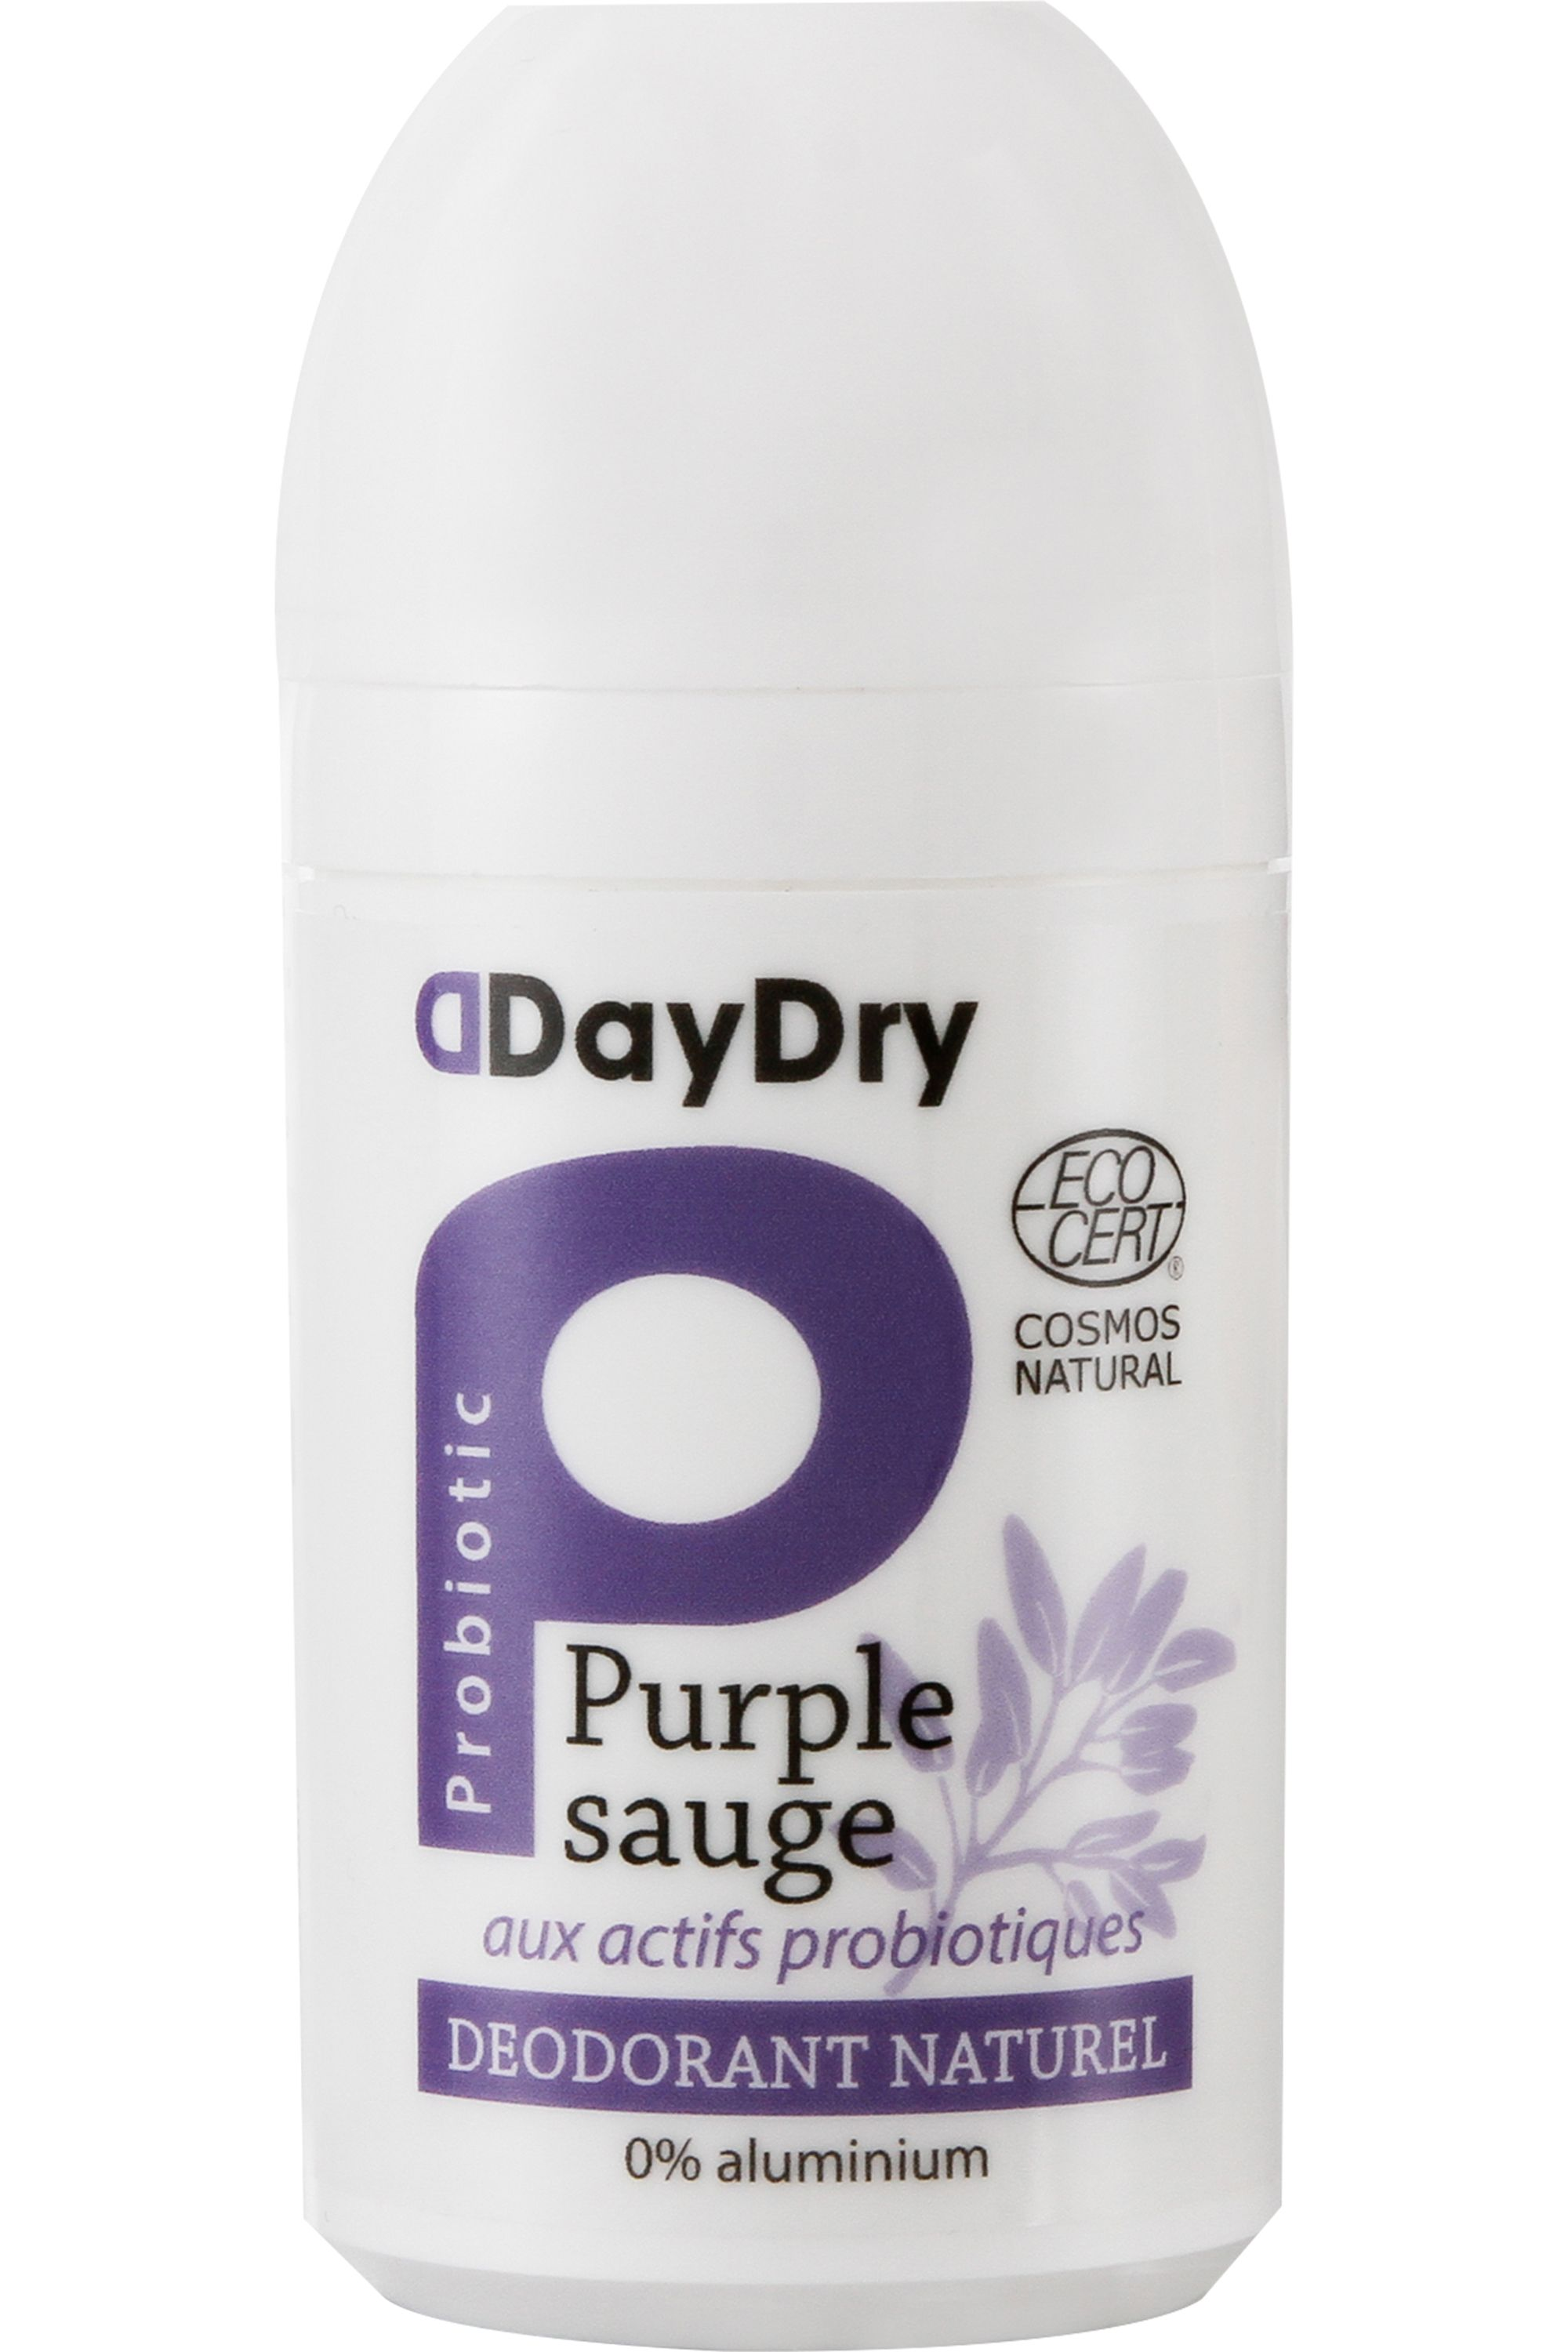 Blissim : Daydry probiotics by Biosme - Déodorant Naturel Purple Sauge - Déodorant Naturel Purple Sauge